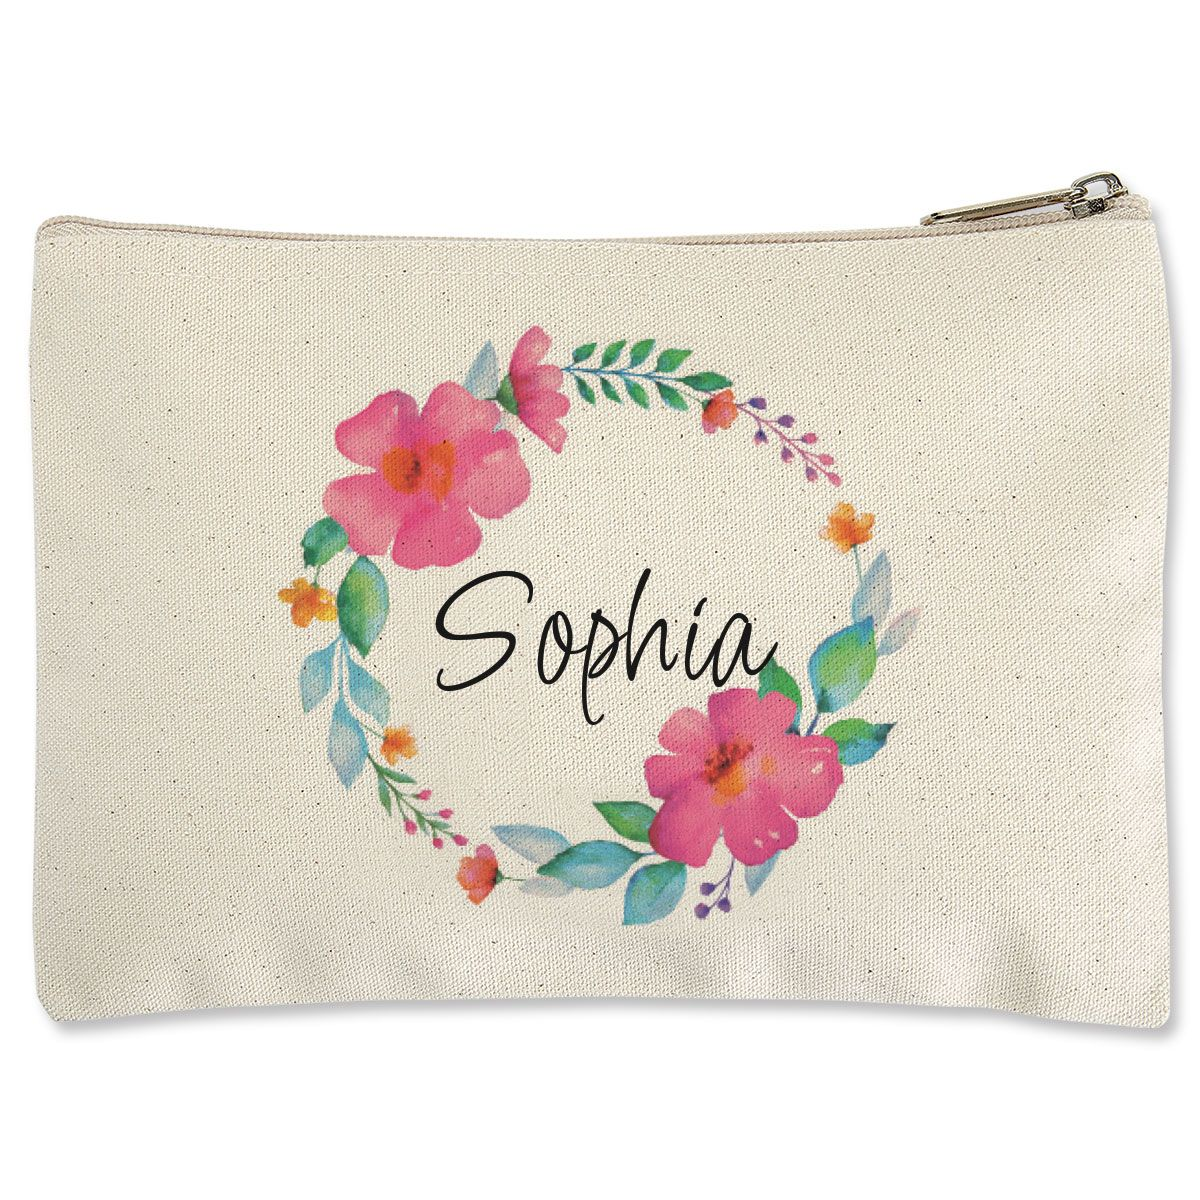 Name in Wreath Zippered Pouch